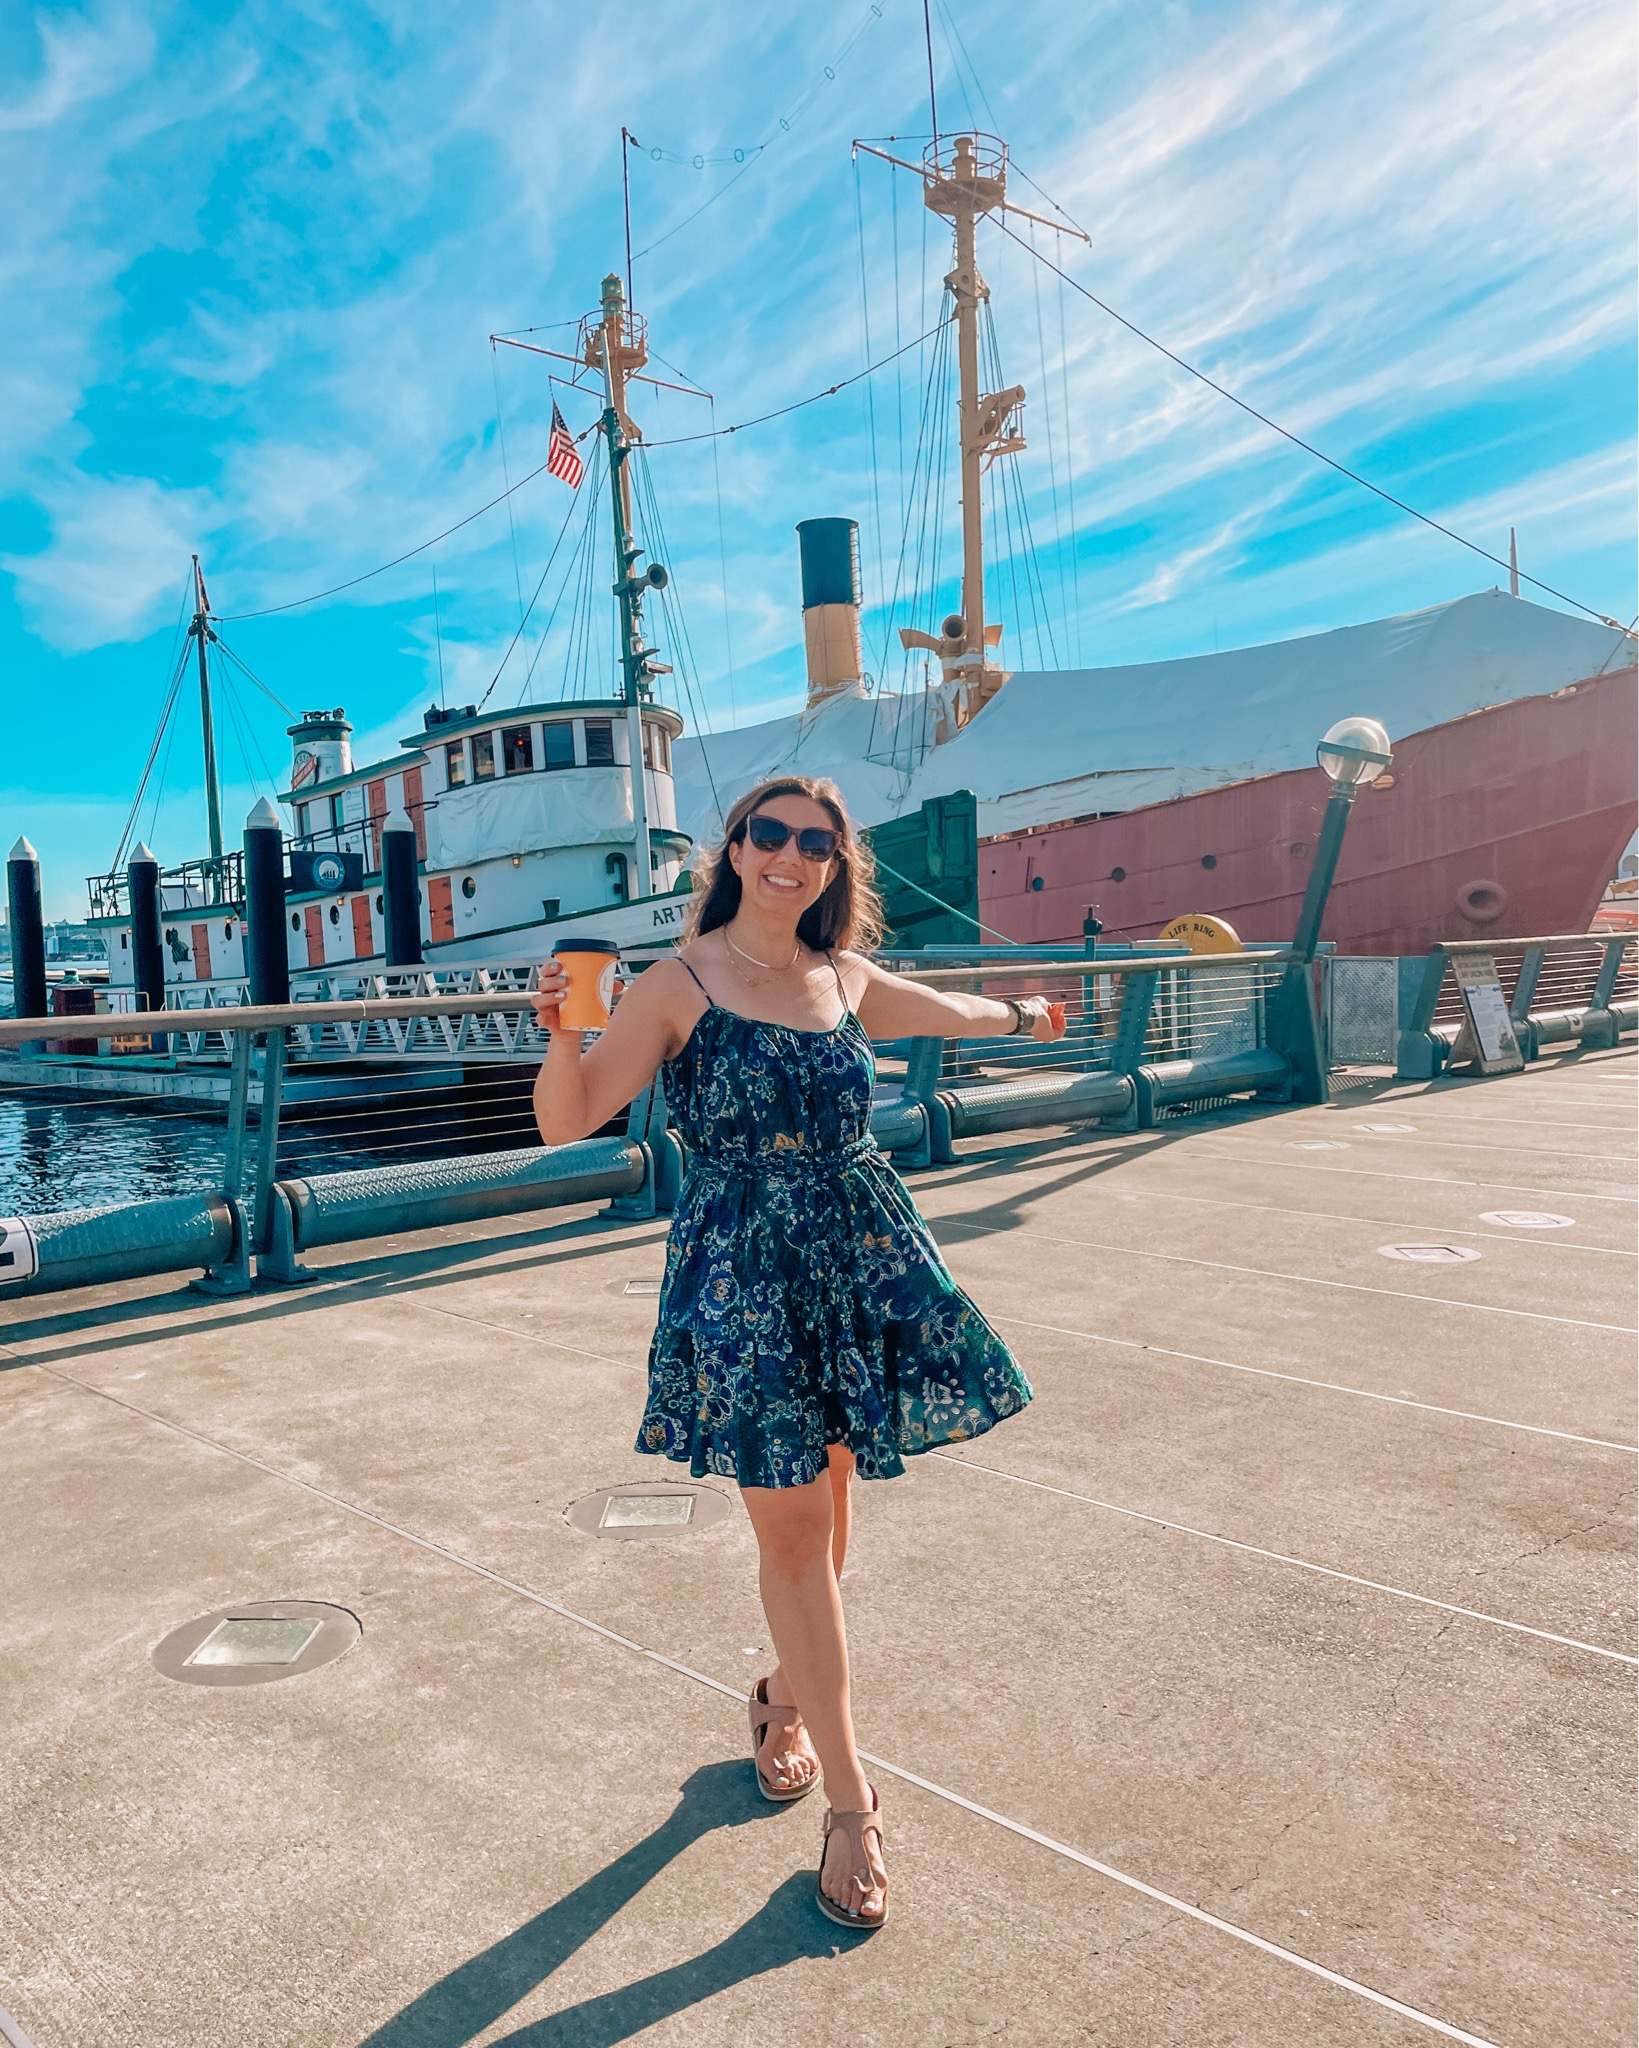 Paisley Dress by popular Chicago fashion blog, Glass of Glam: image of a woman wearing a blue paisley dress and standing in front of a white boat.